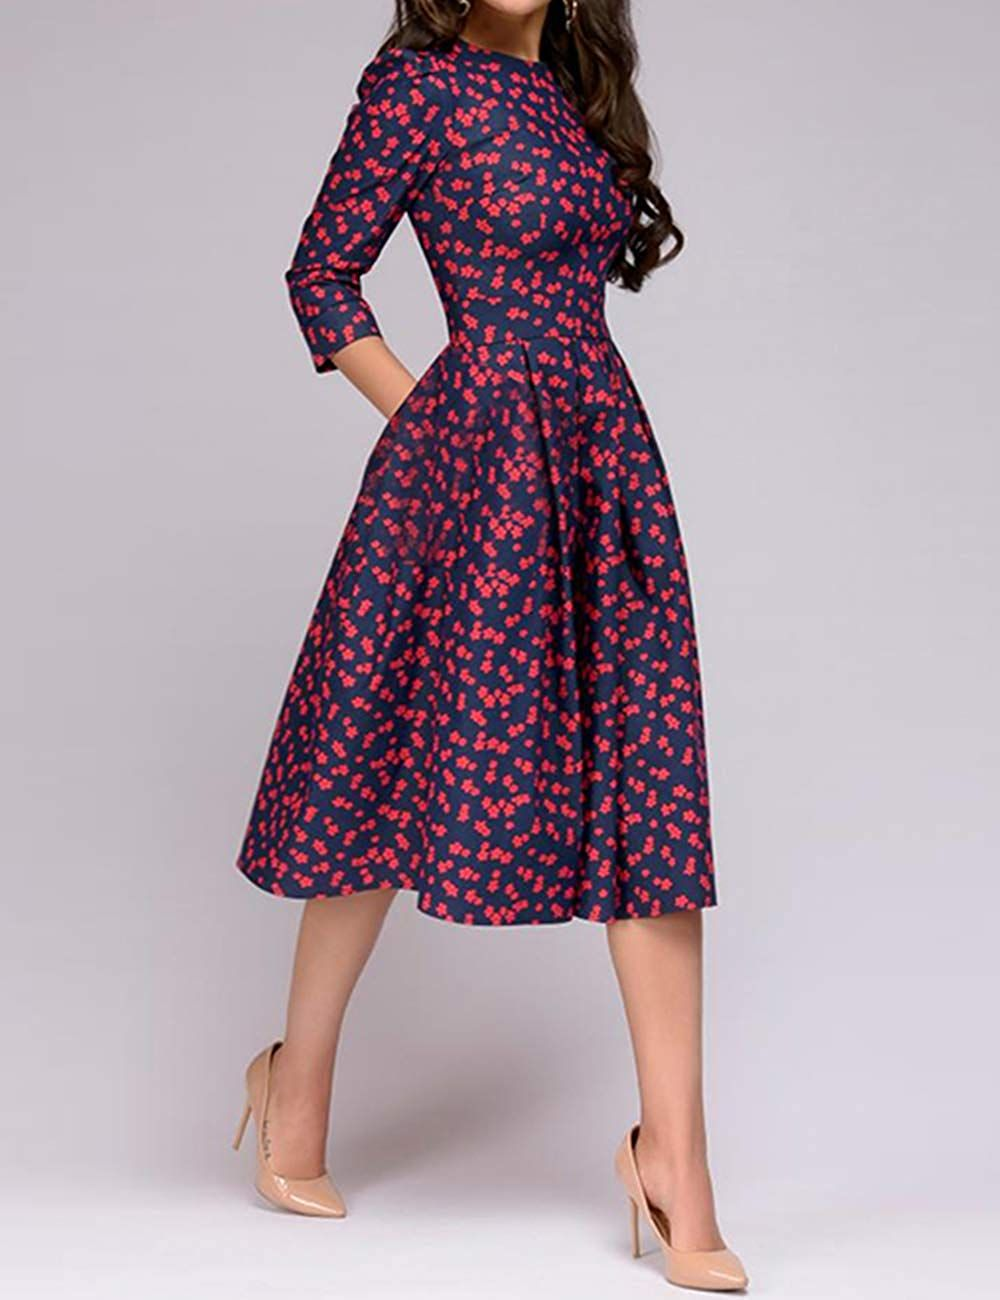 fa4bc36137a Simple Flavor Women s Floral Vintage Dress Elegant Midi Evening Dress 3 4  Sleeves at Amazon Women s Clothing store